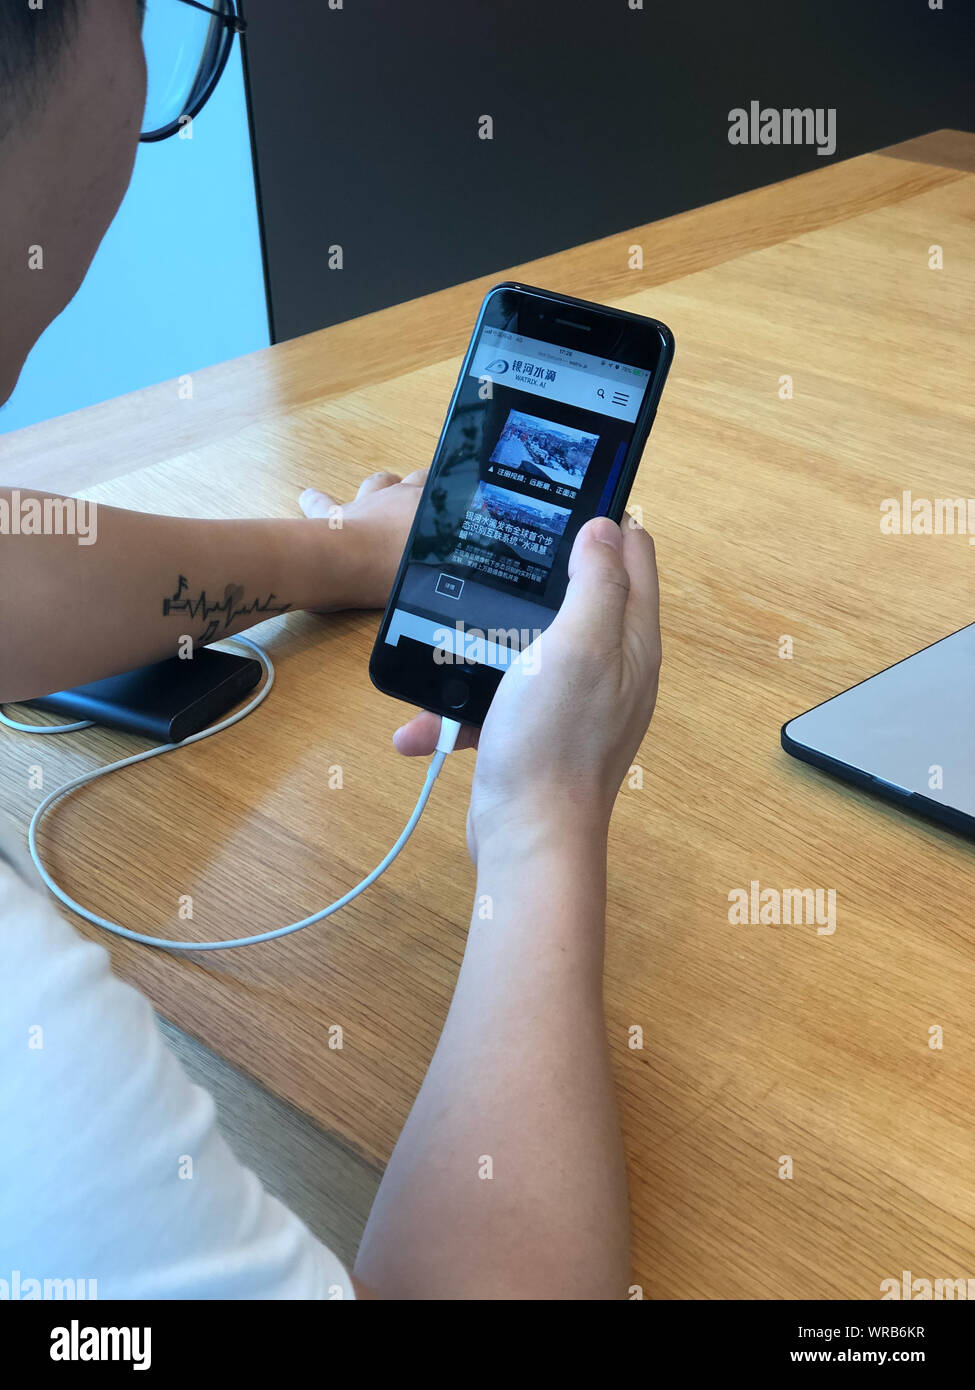 A Chinese netizen browses the website of AI technology company Watrix on his Apple iPhone smartphone in Beijing, China, July 23rd, 2019. Stock Photo